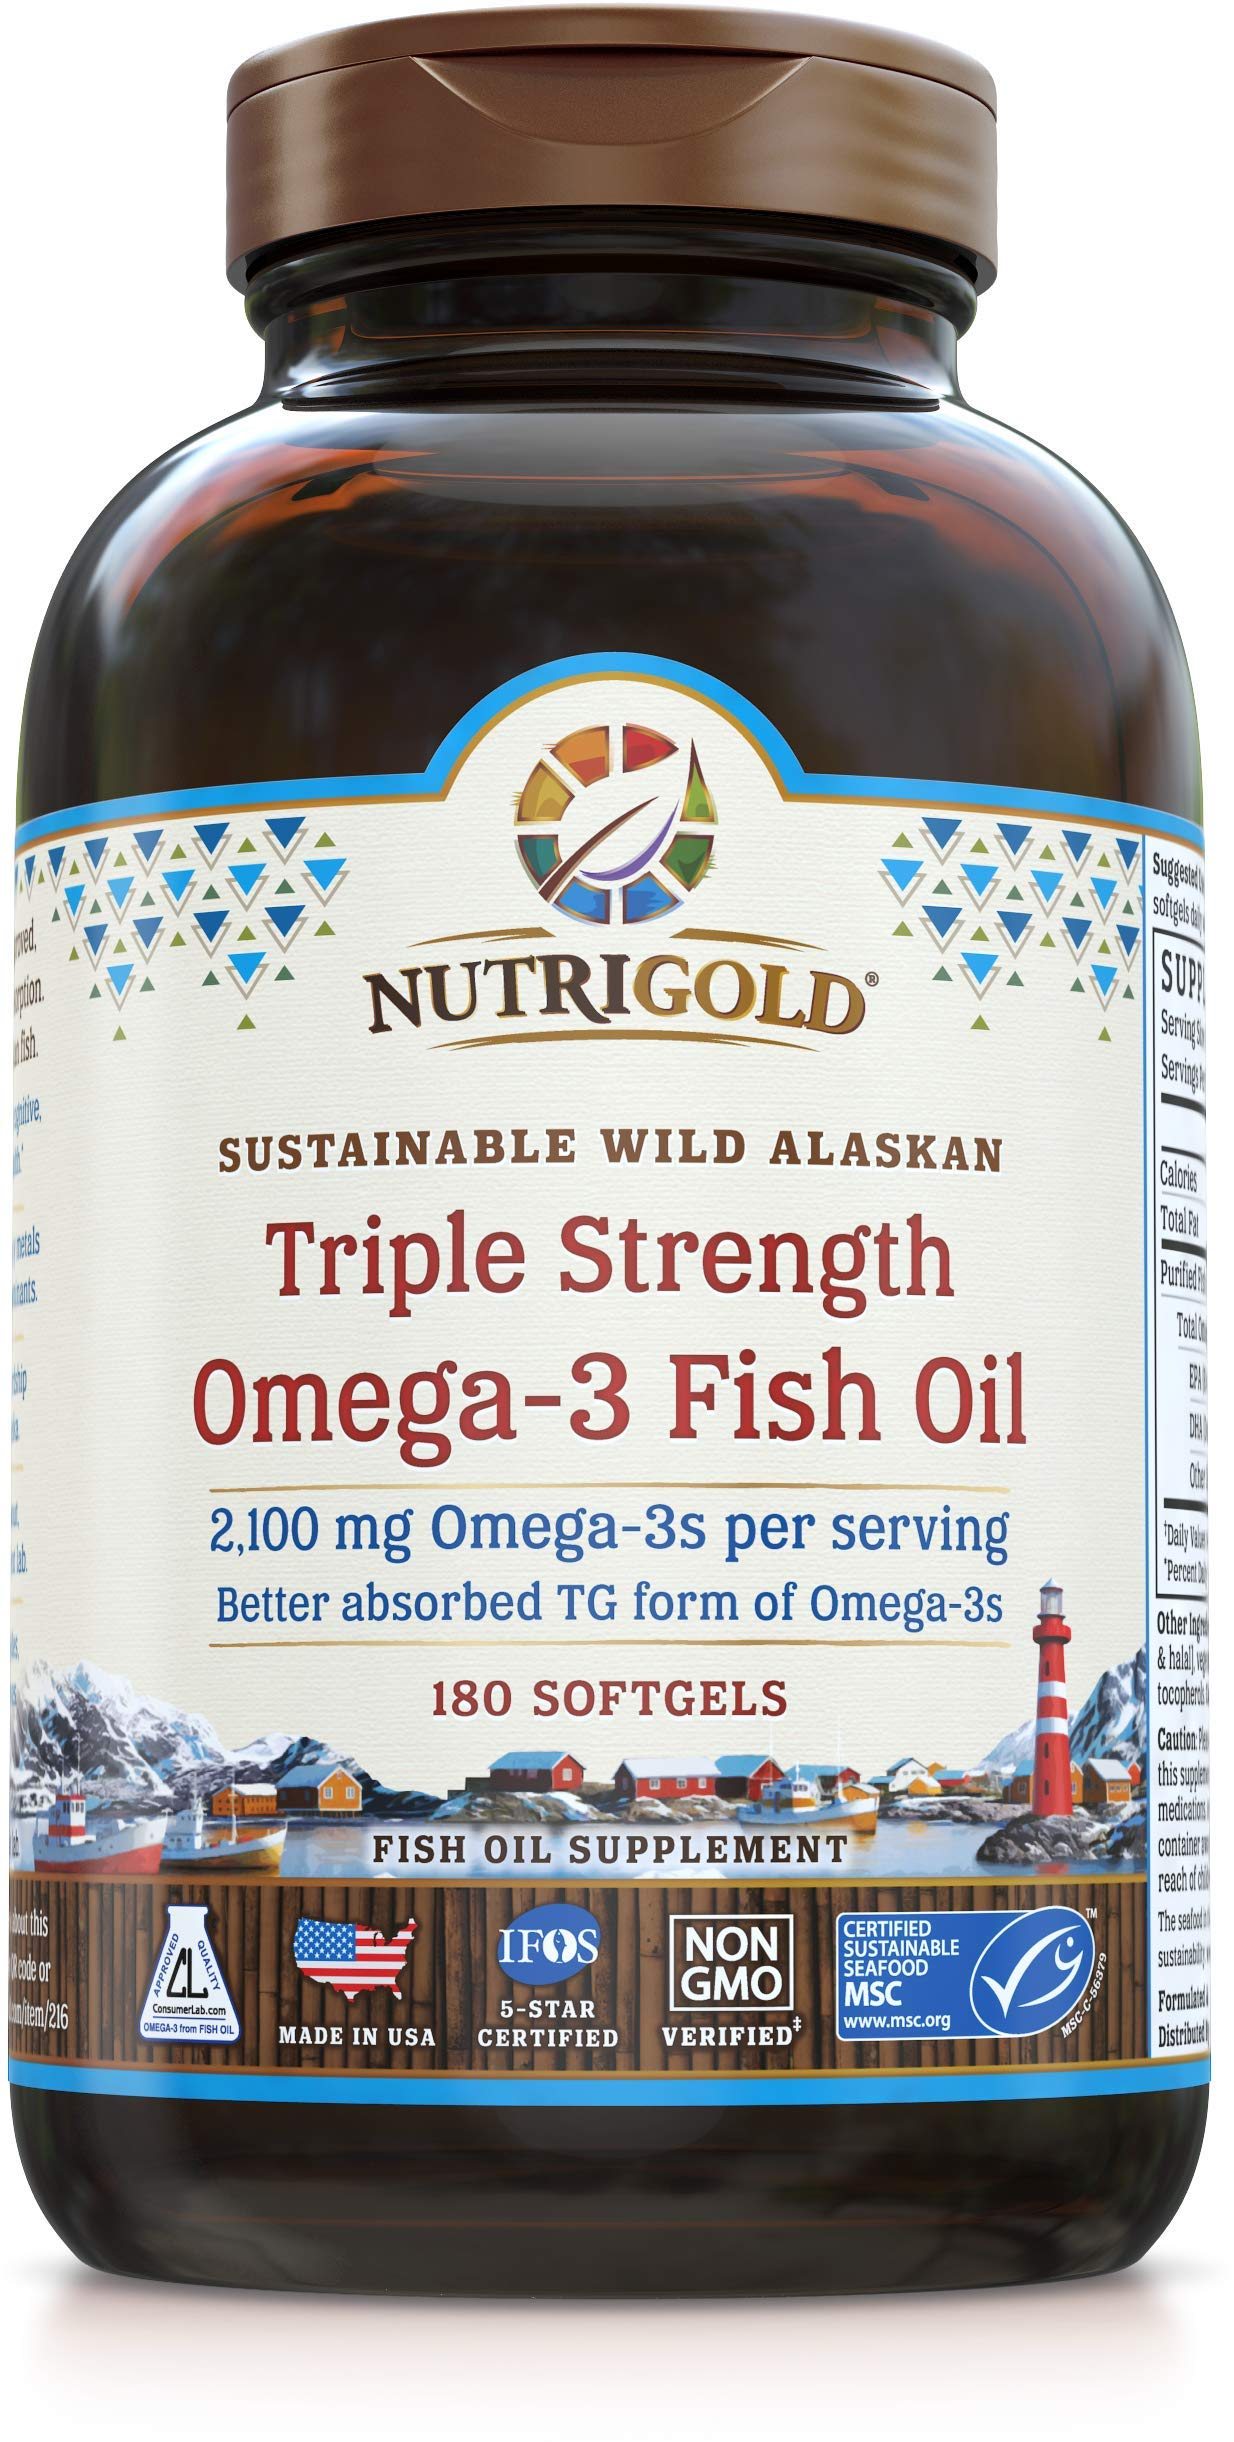 Triple Strength Omega-3 Fish Oil Supplement, Better Absorbed TG Form, Made in USA, 5-Star Certified, ConsumerLab Approved, Certified Sustainable by Nutrigold